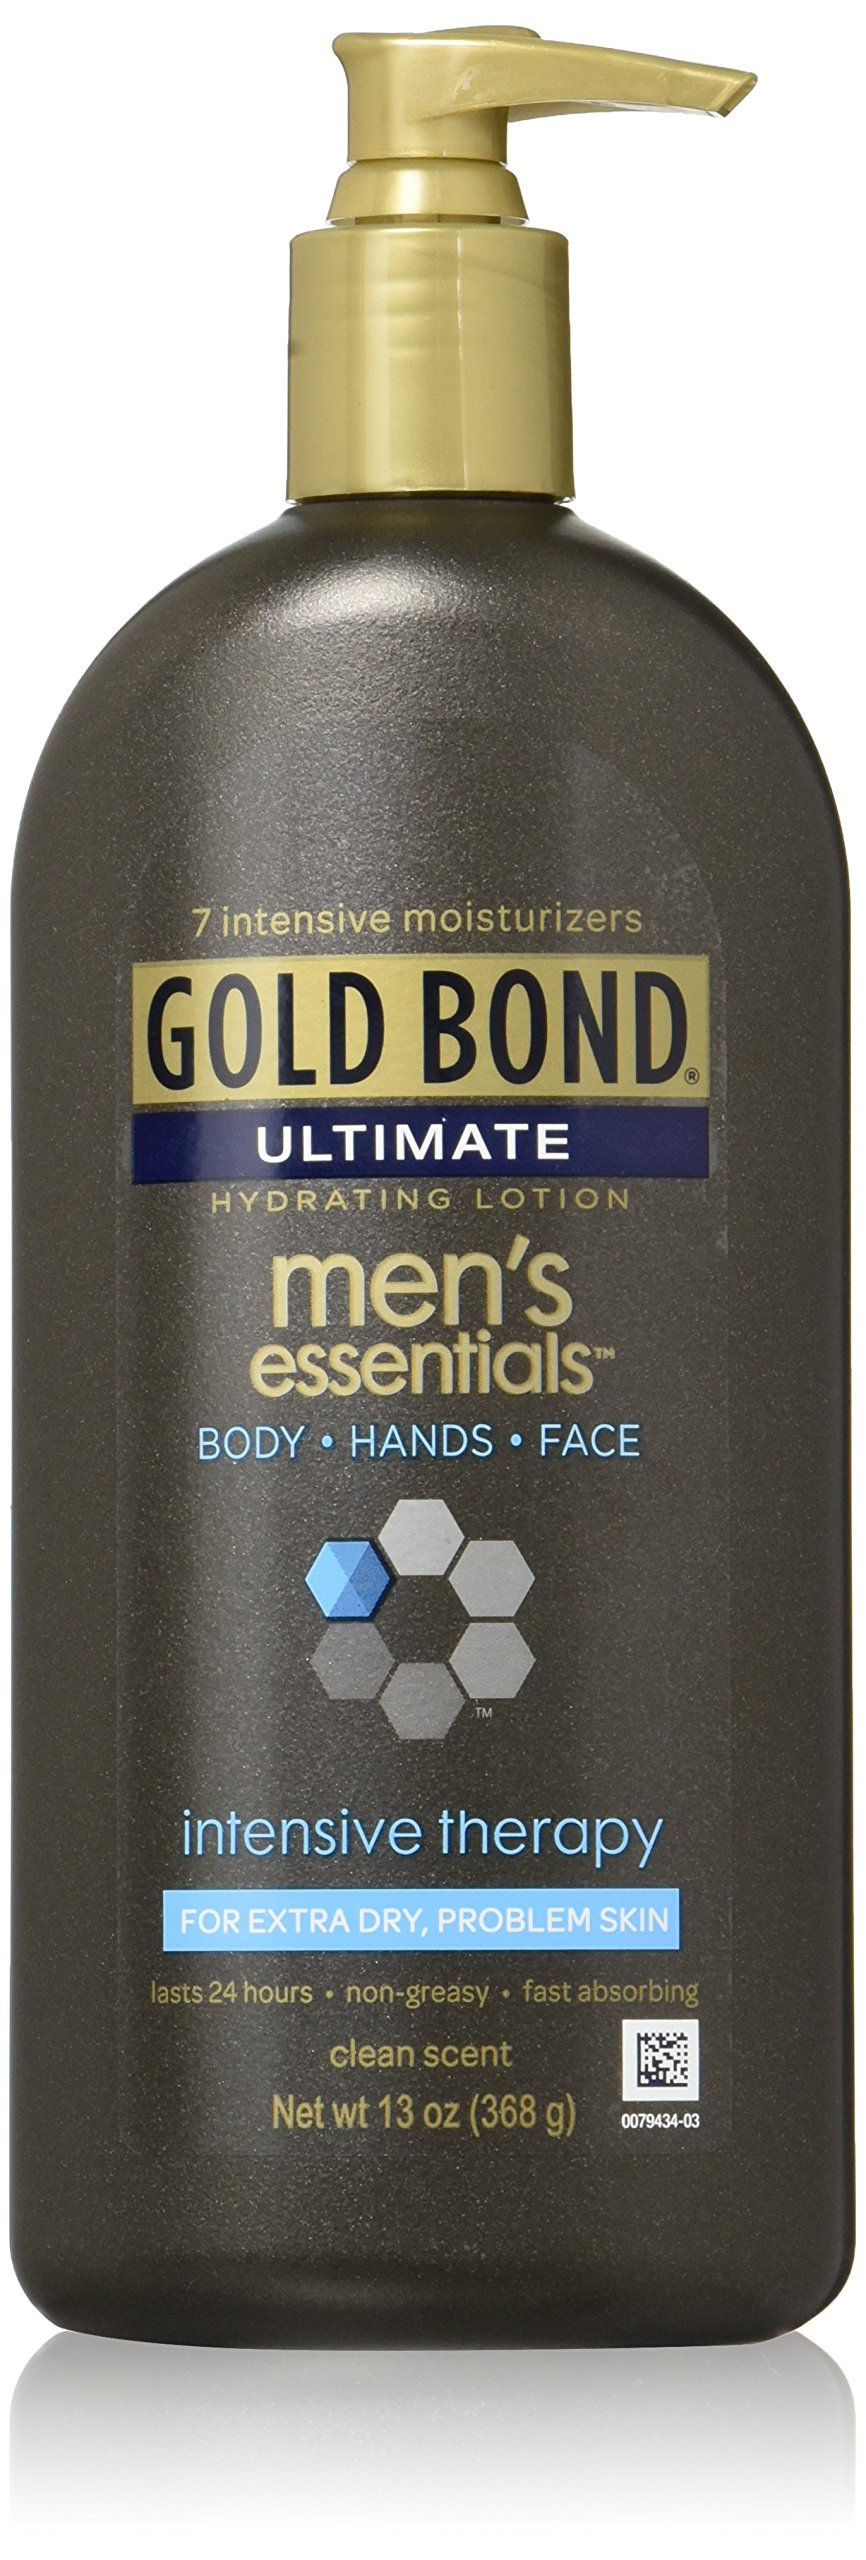 Gold Bond Men's Essentials Intensive Therapy Lotion, 13 Ounce